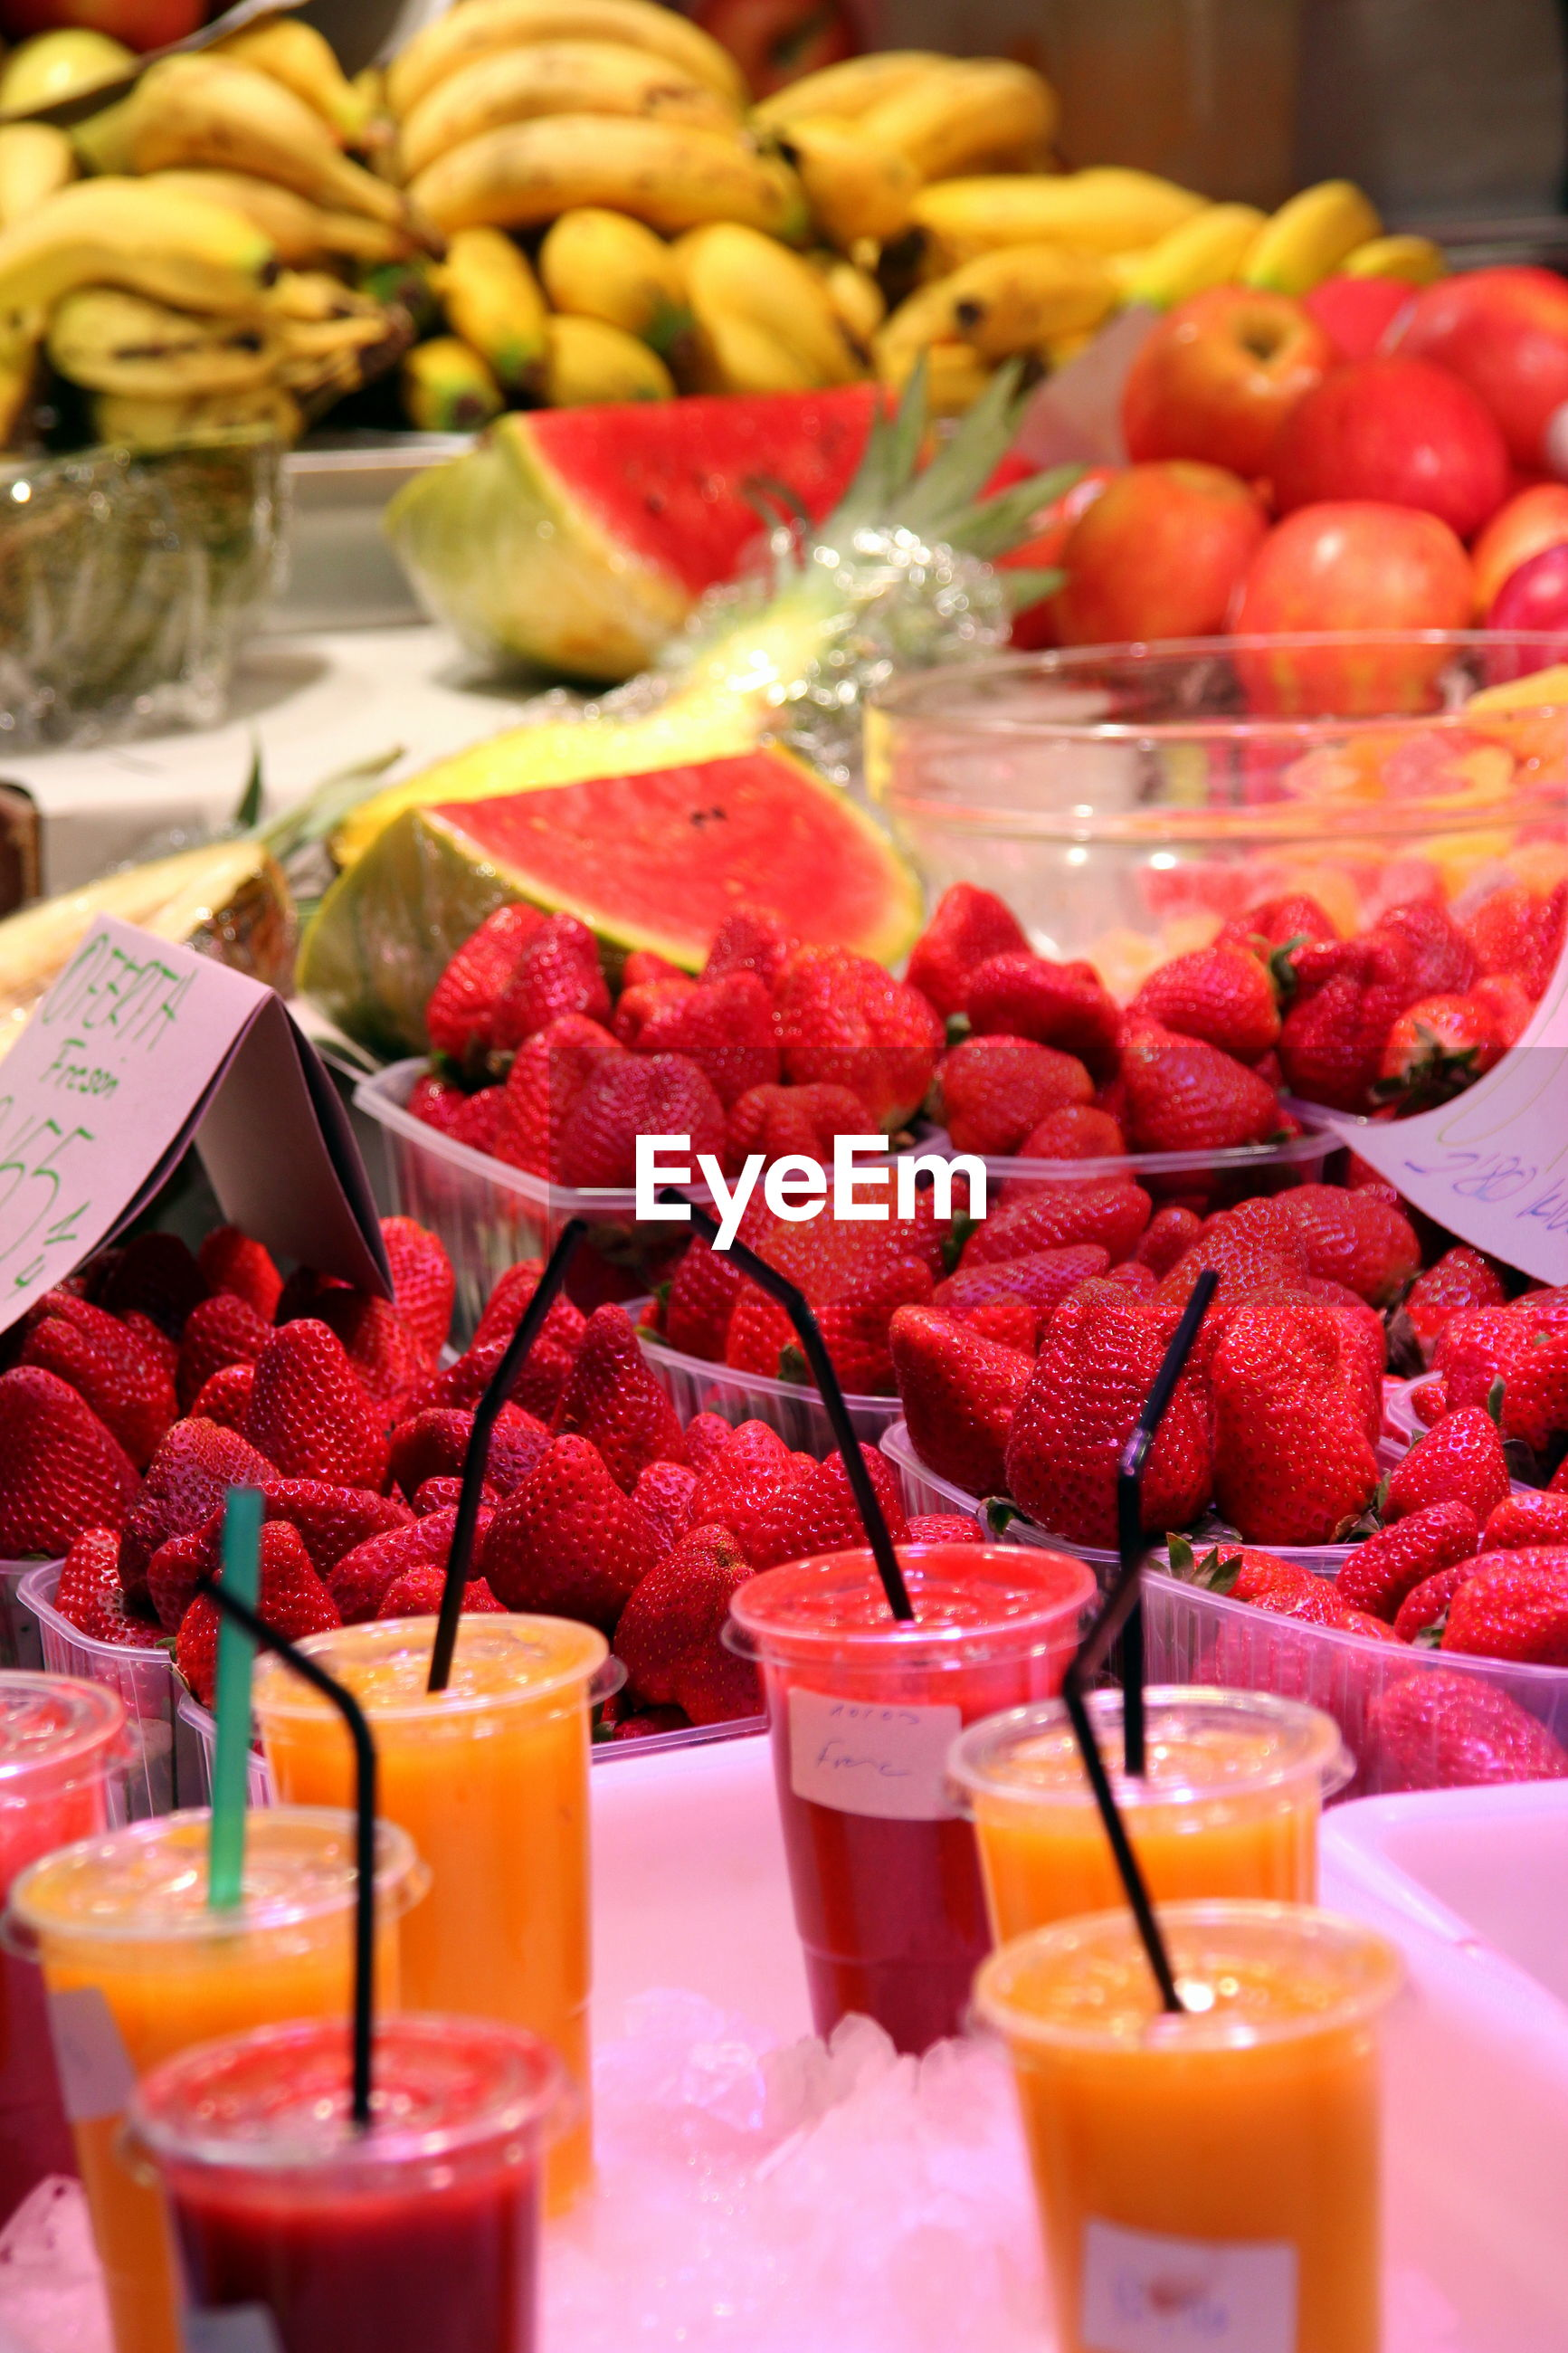 Fresh fruit and colorful juices, for sale on the market counter